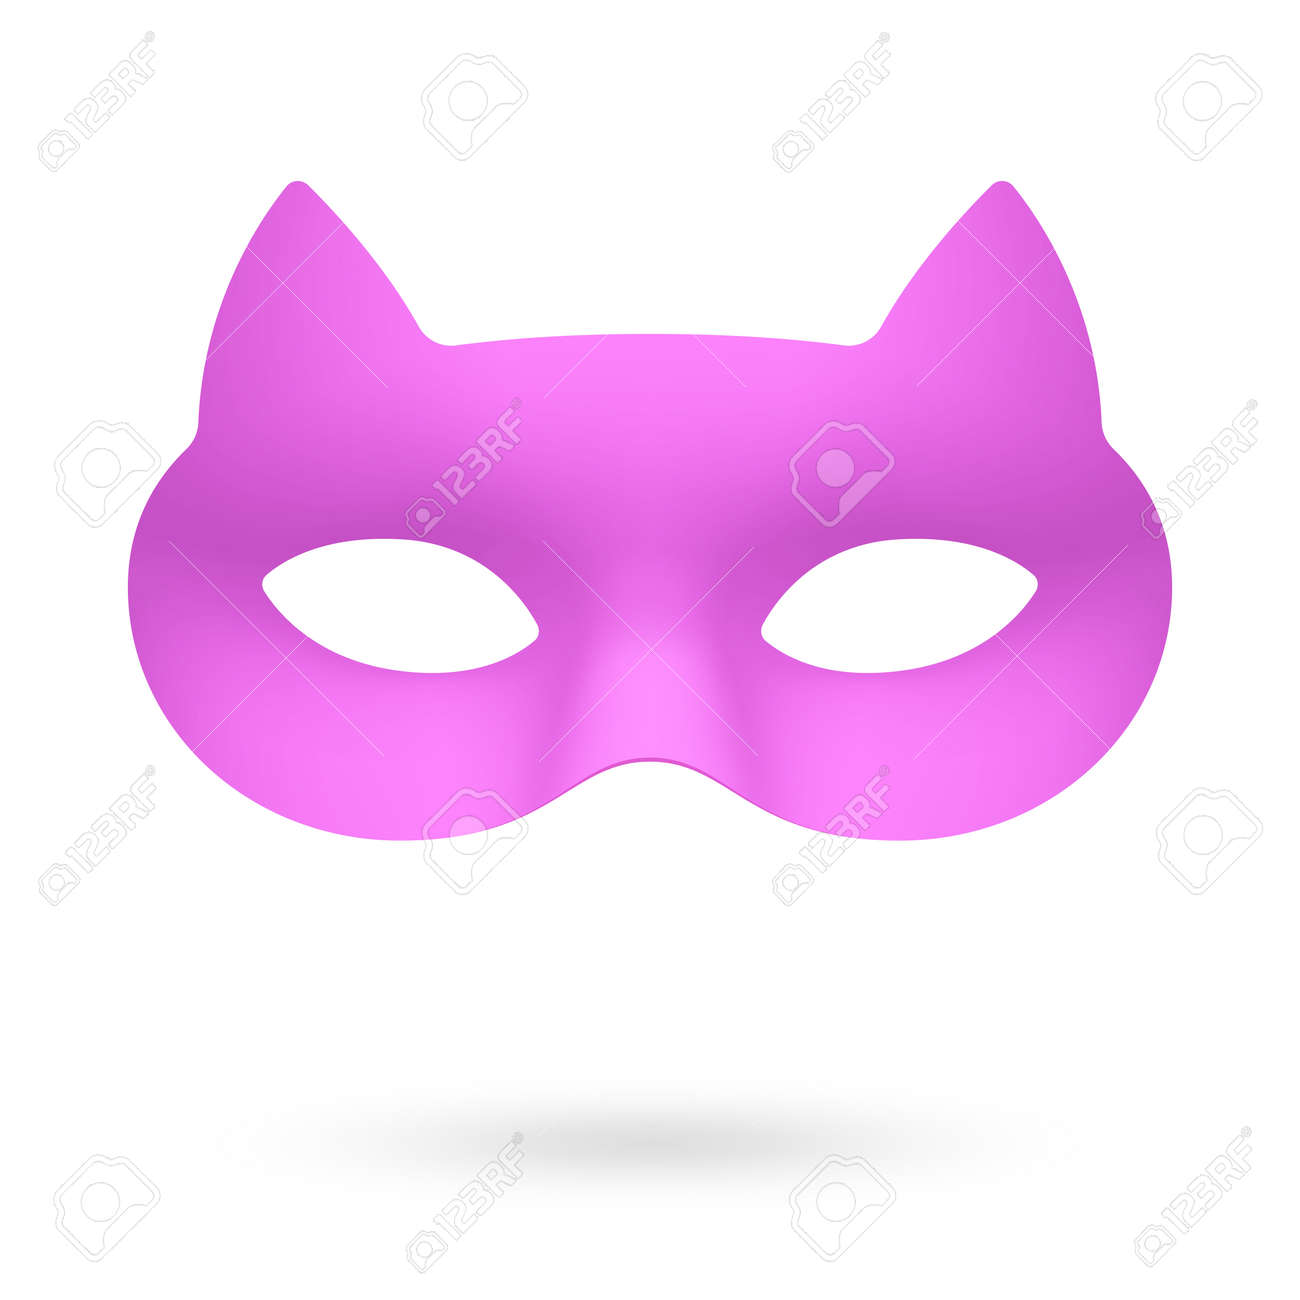 0c11cd902eca Purple Masquerade Eye Mask Illustration. Royalty Free Cliparts ...